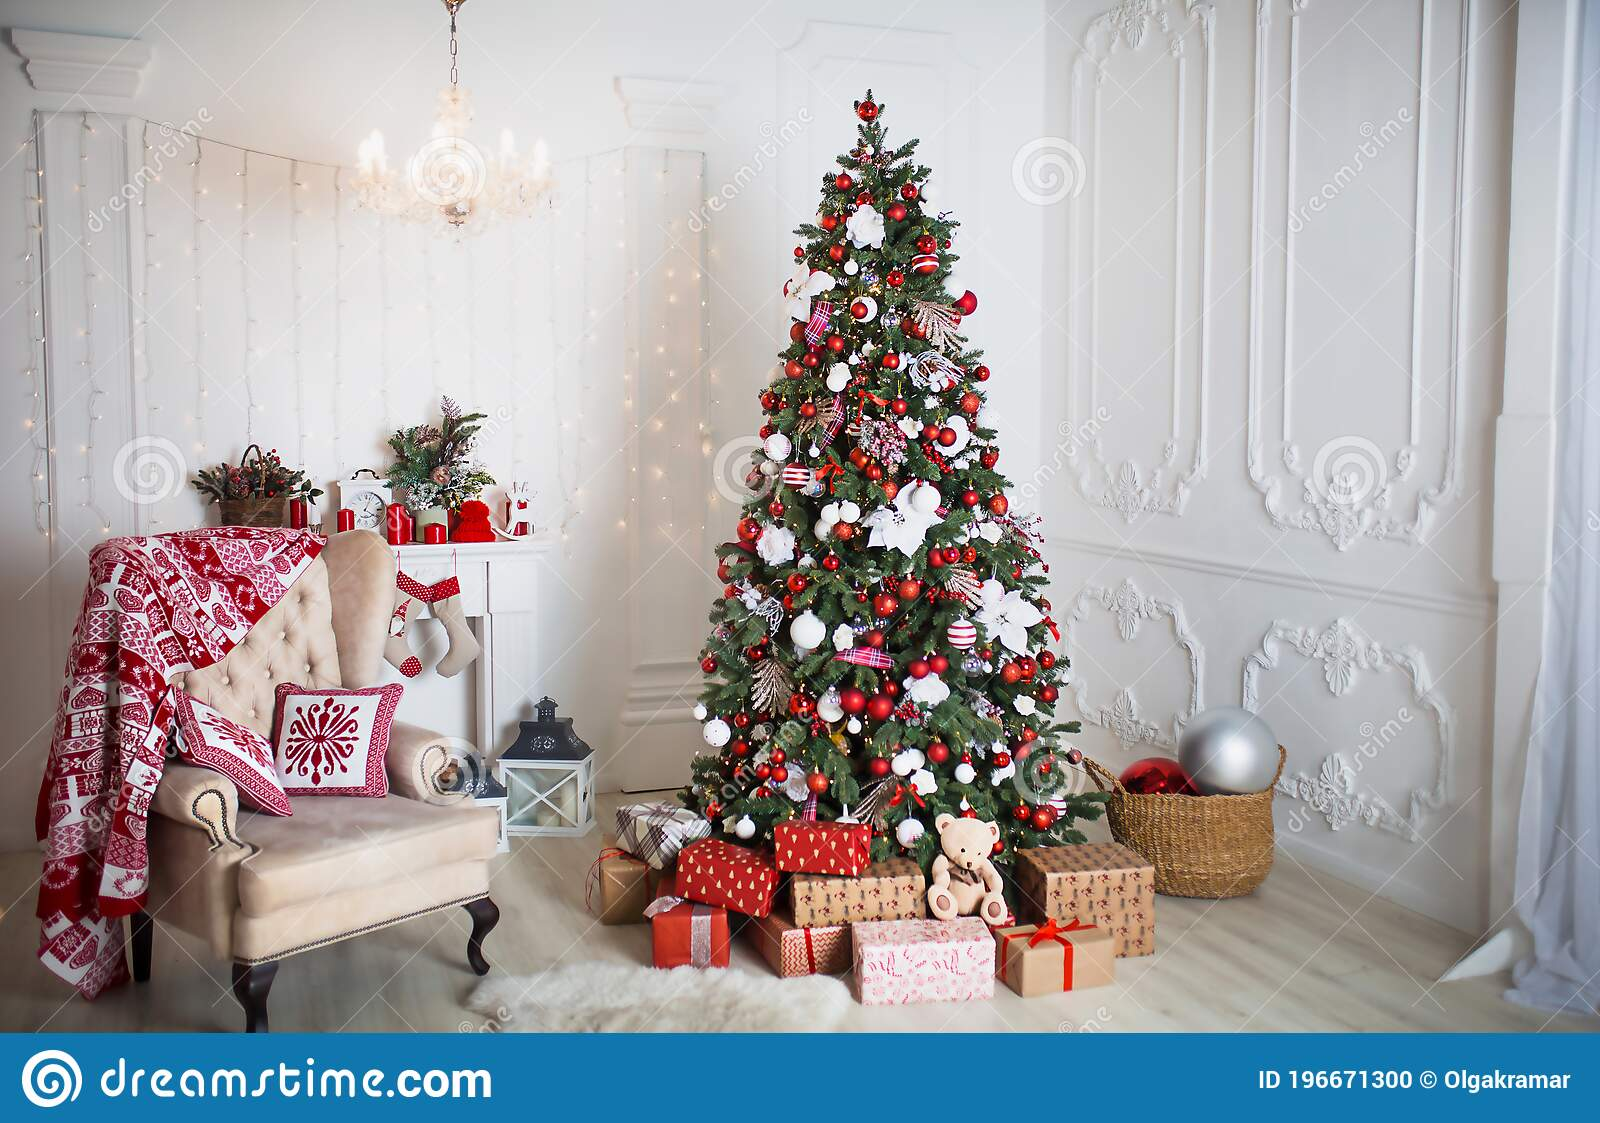 Christmas Tree With Red And White Decor In A White Living Room With Gifts In Boxes A Chair With Pillows And A Blanket With Winter Stock Photo Image Of Christmas House